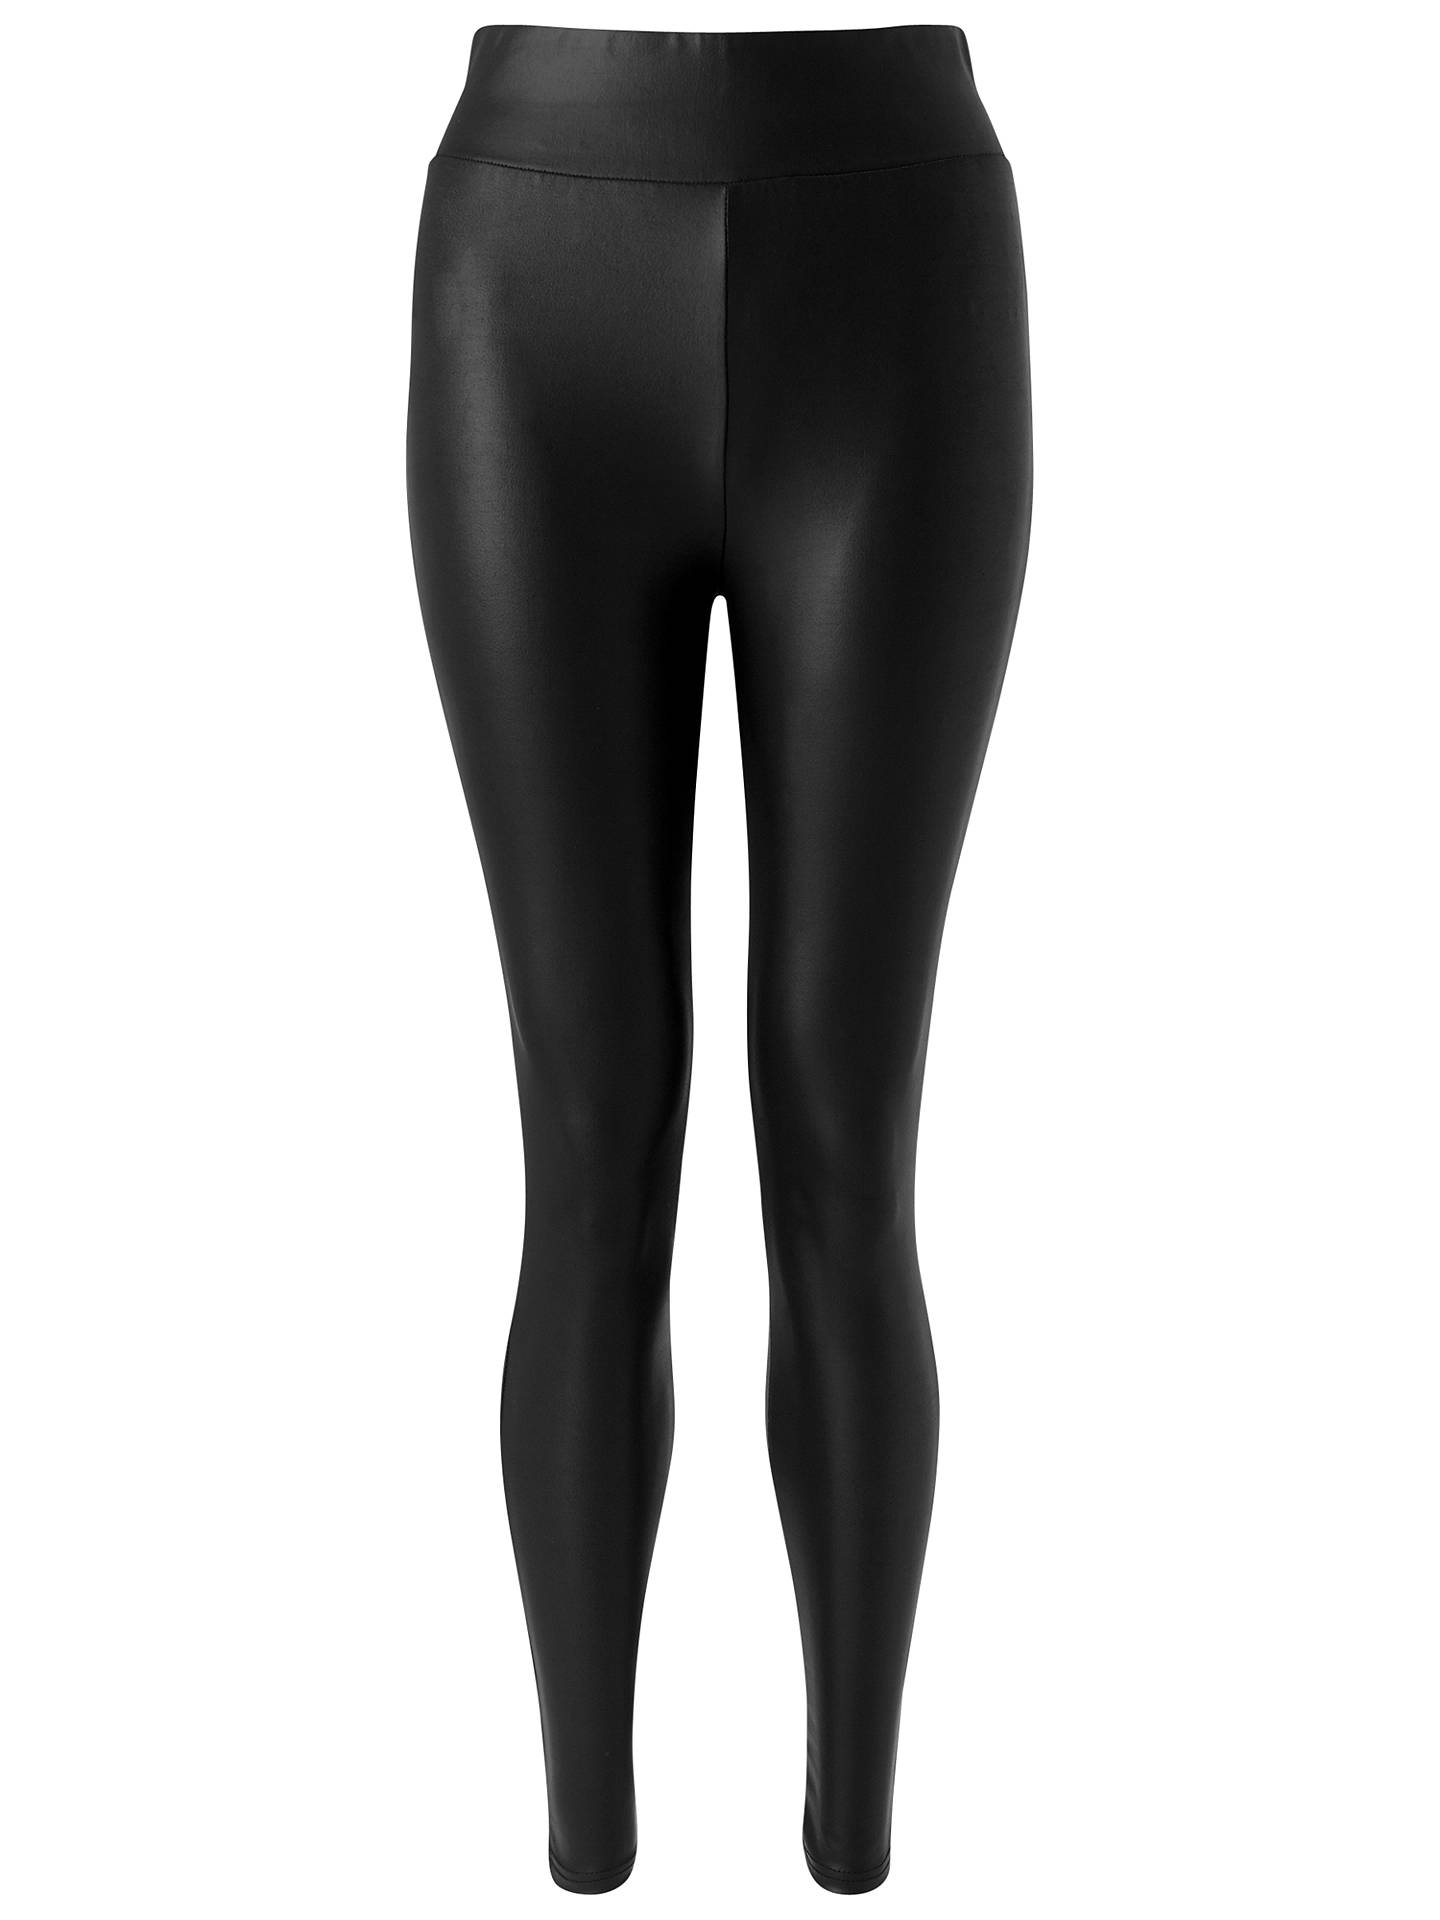 117d717b504c95 Buy Miss Selfridge Wet Look Leggings, Black, 6 Online at johnlewis.com ...